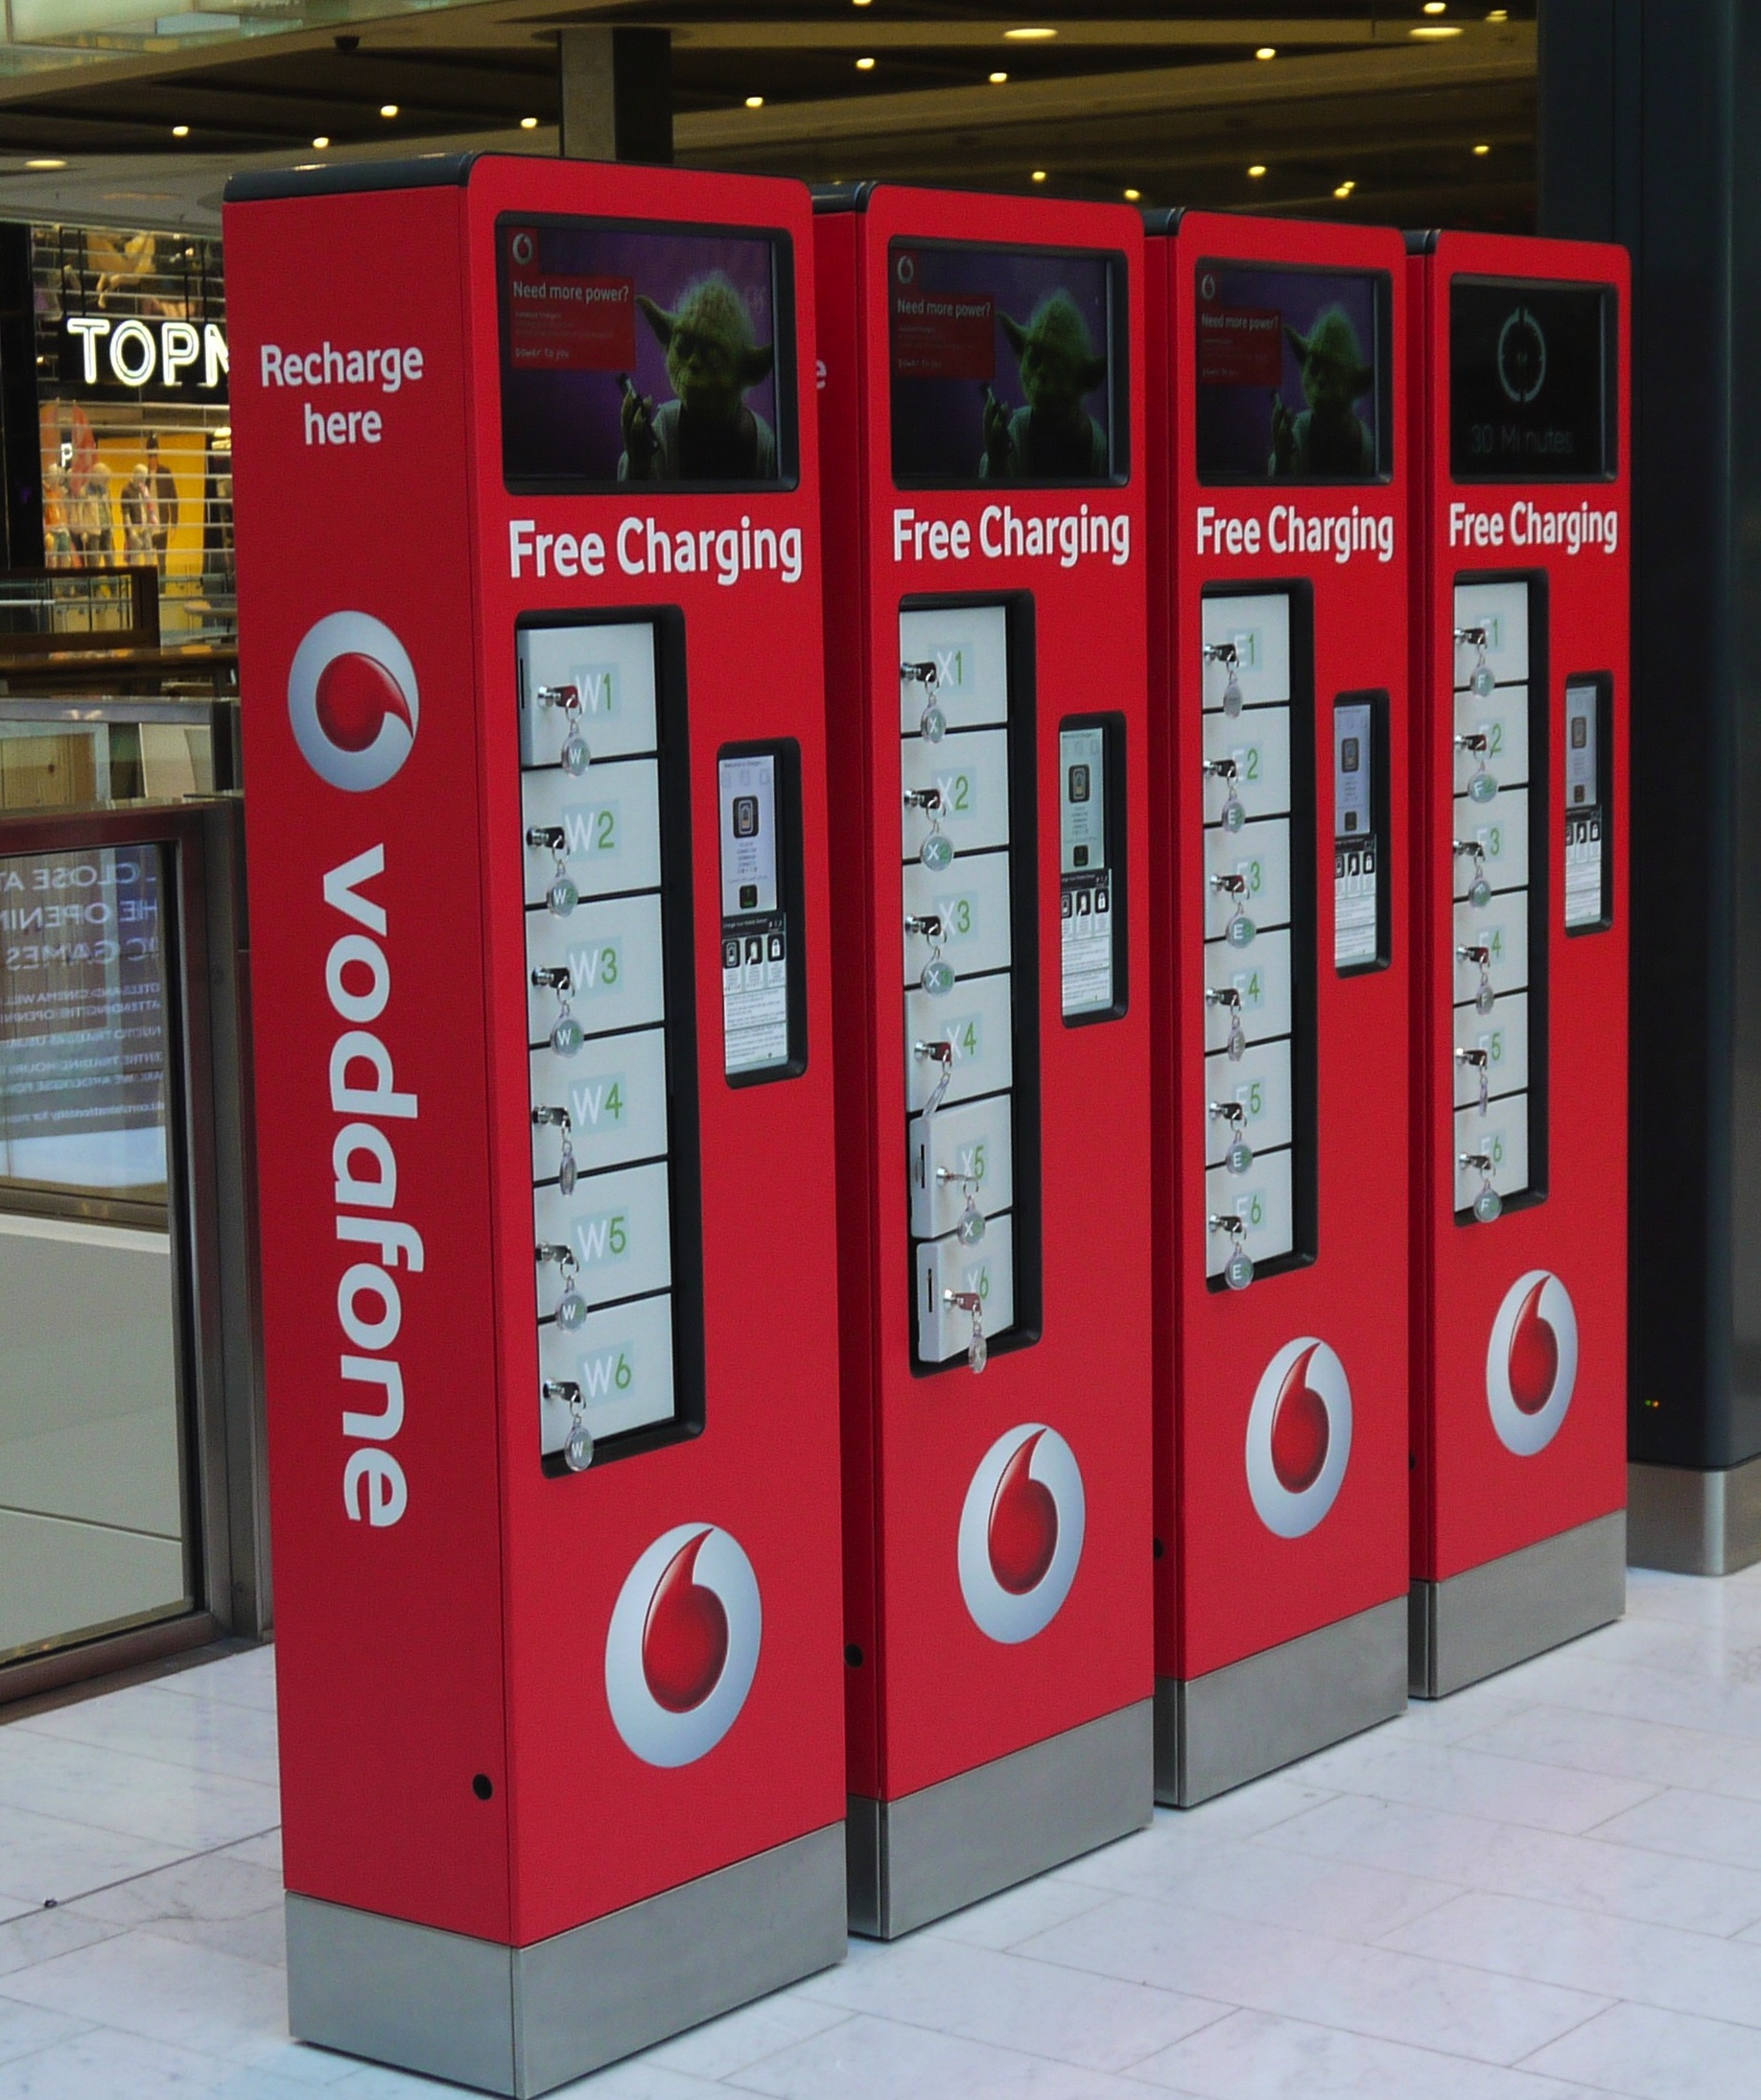 Mobile Device Charging Unit Westfield Stratford Inclusus